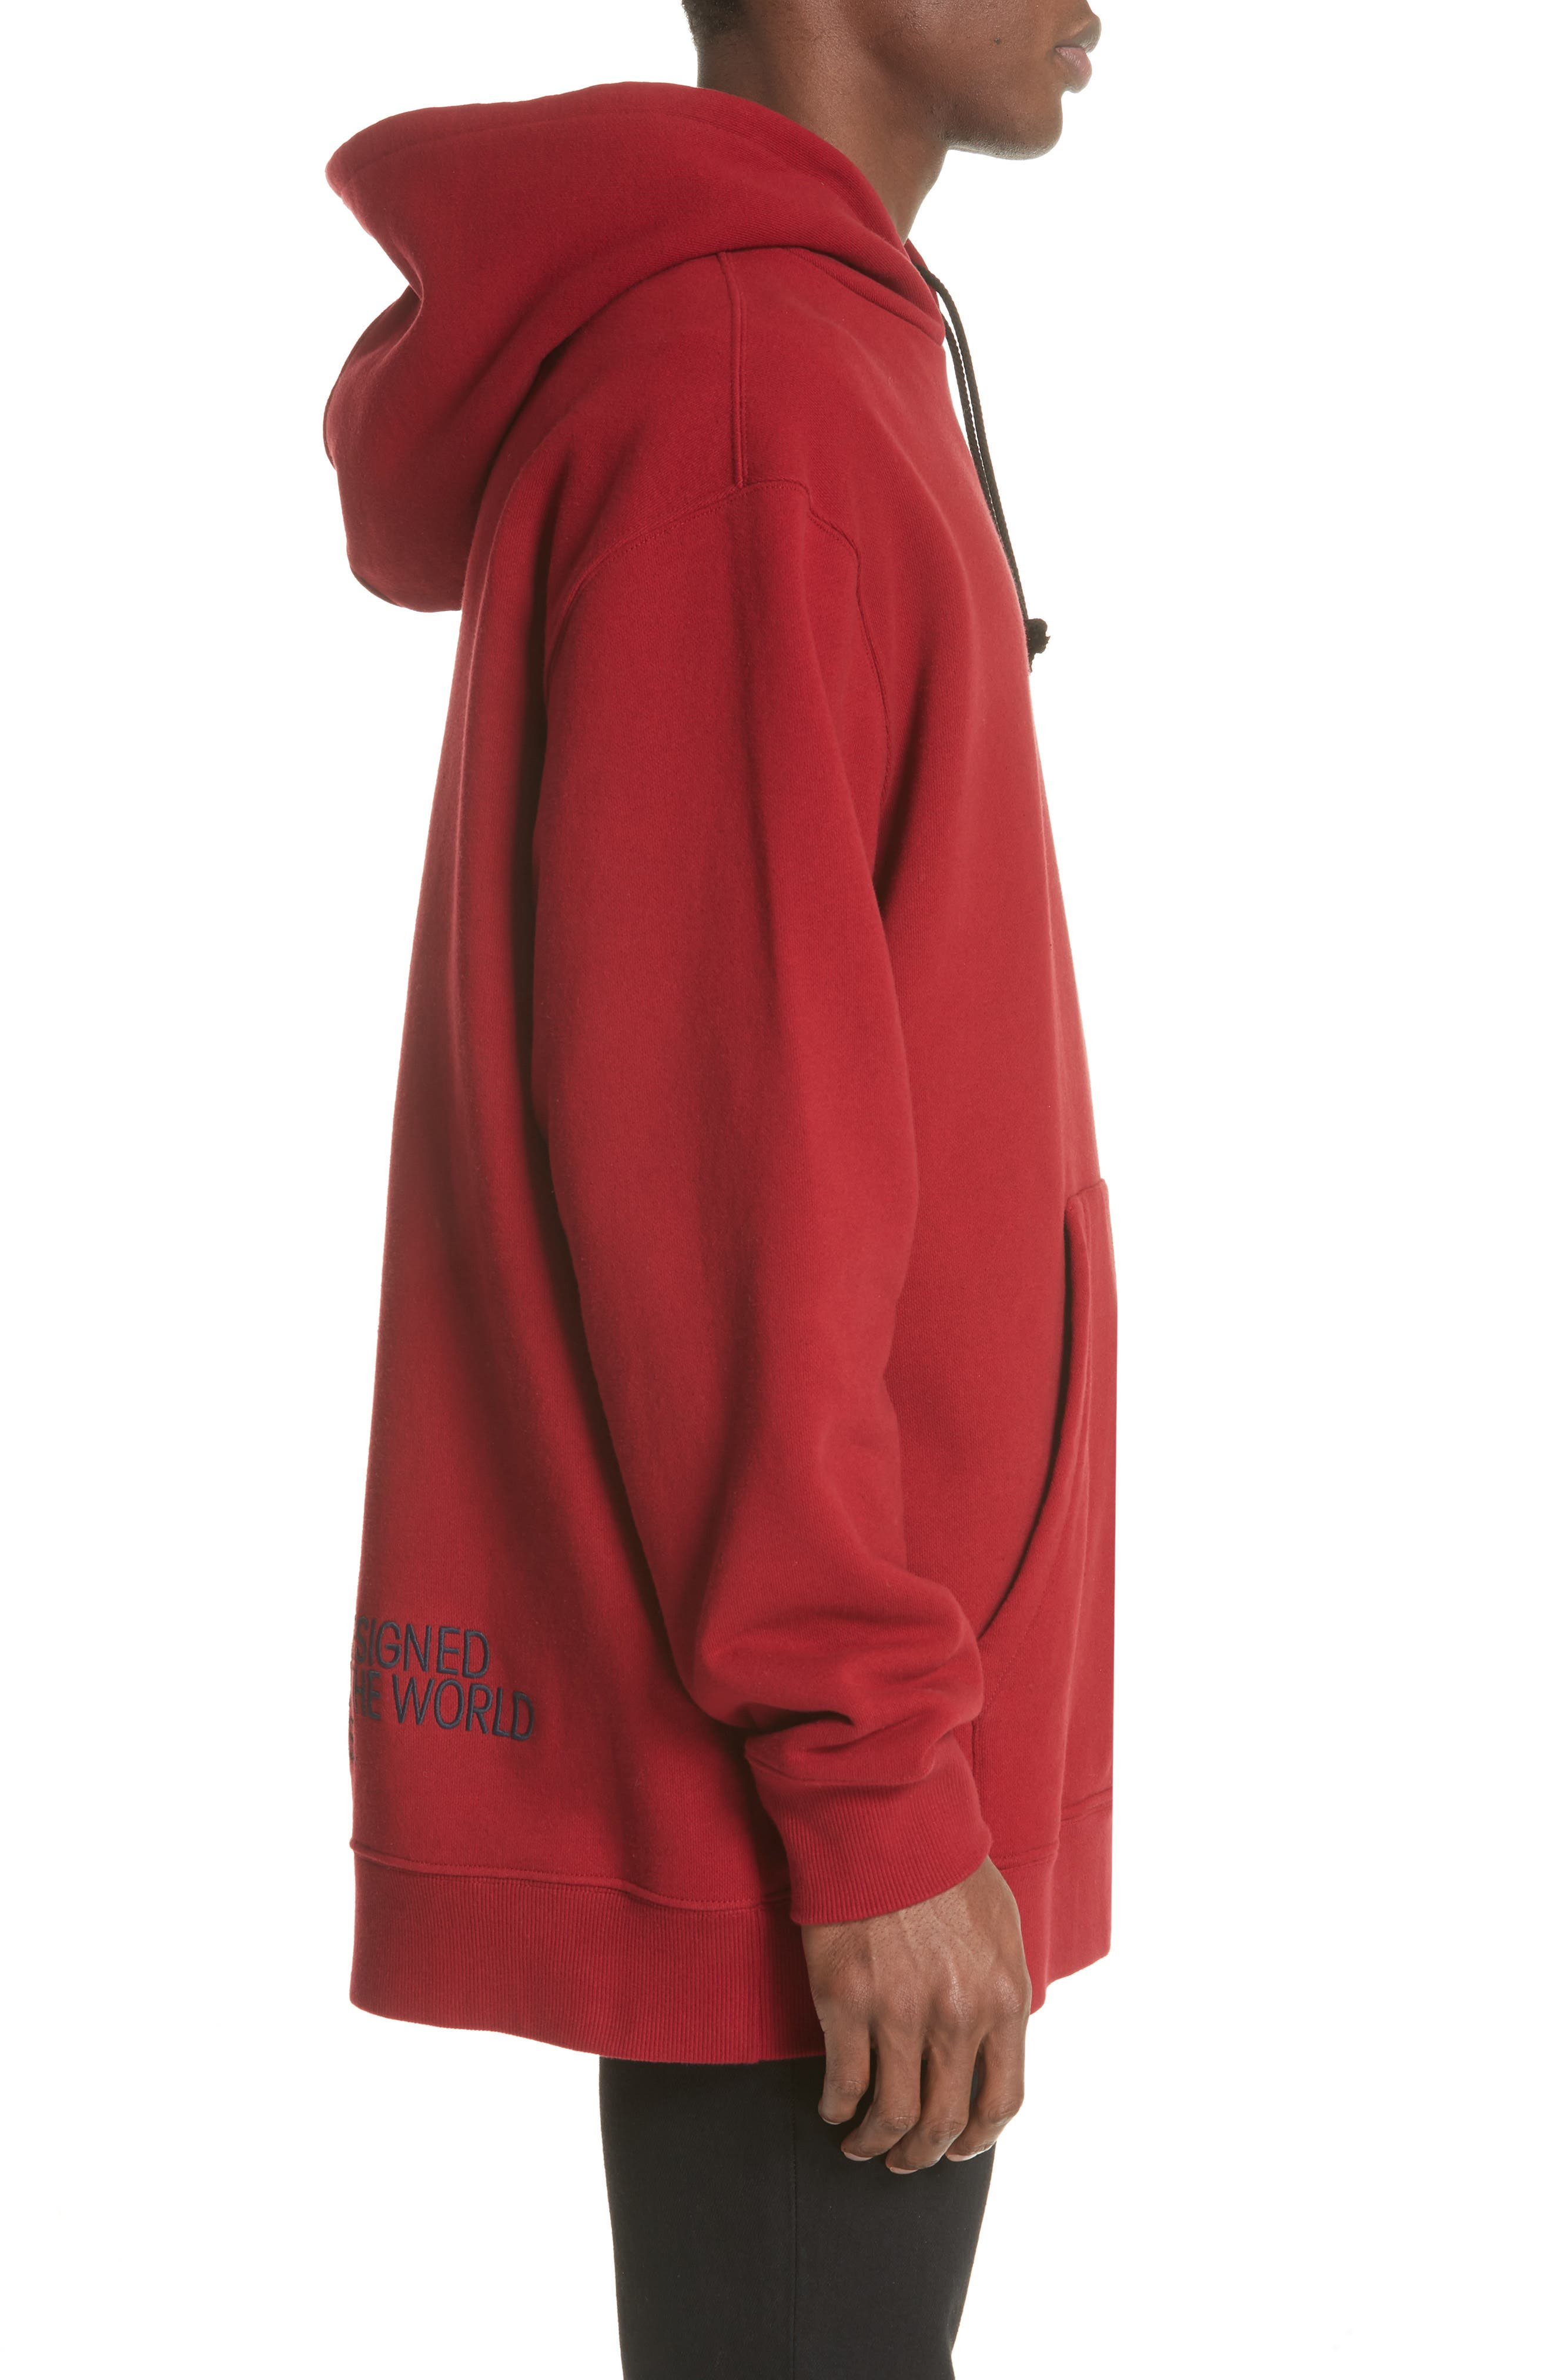 CALVIN KLEIN 205W39NYC,                             Oversize Hoodie,                             Alternate thumbnail 3, color,                             602